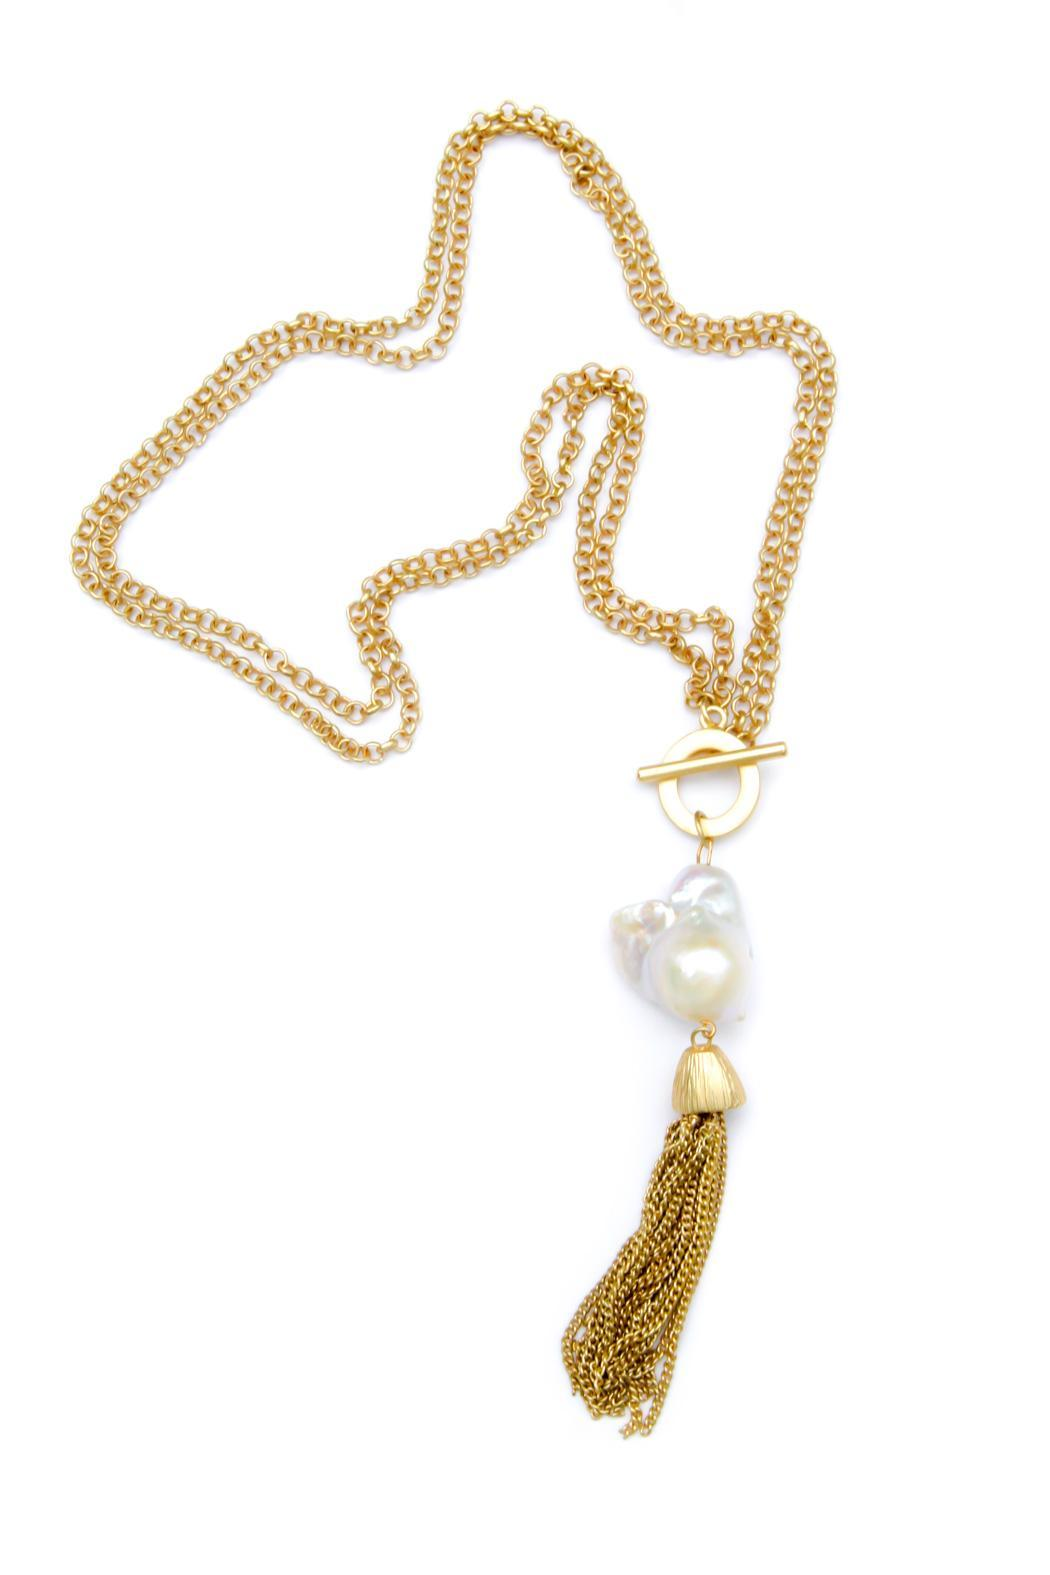 Exclusively Leslie Baroque-Pearl-Gold Tassel Necklace - Main Image